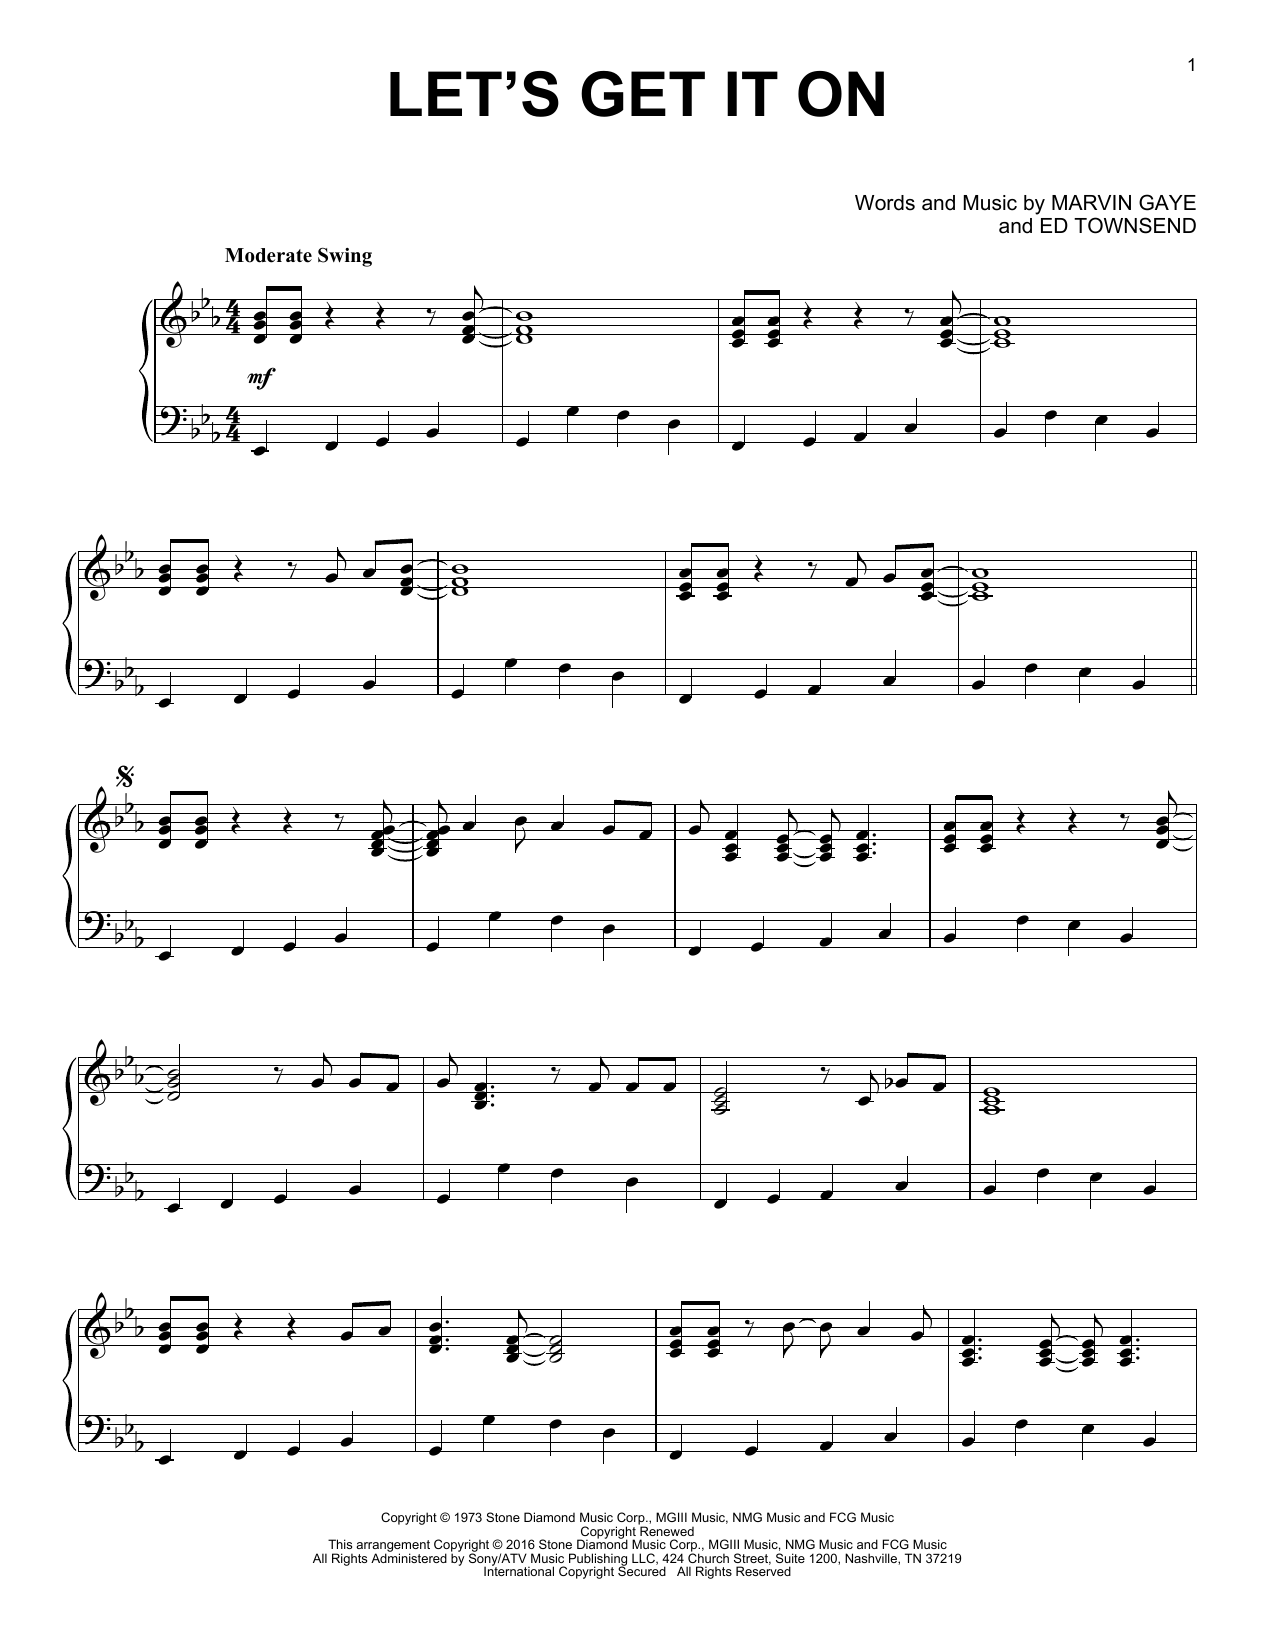 Marvin Gaye Let's Get It On [Jazz version] sheet music notes and chords. Download Printable PDF.